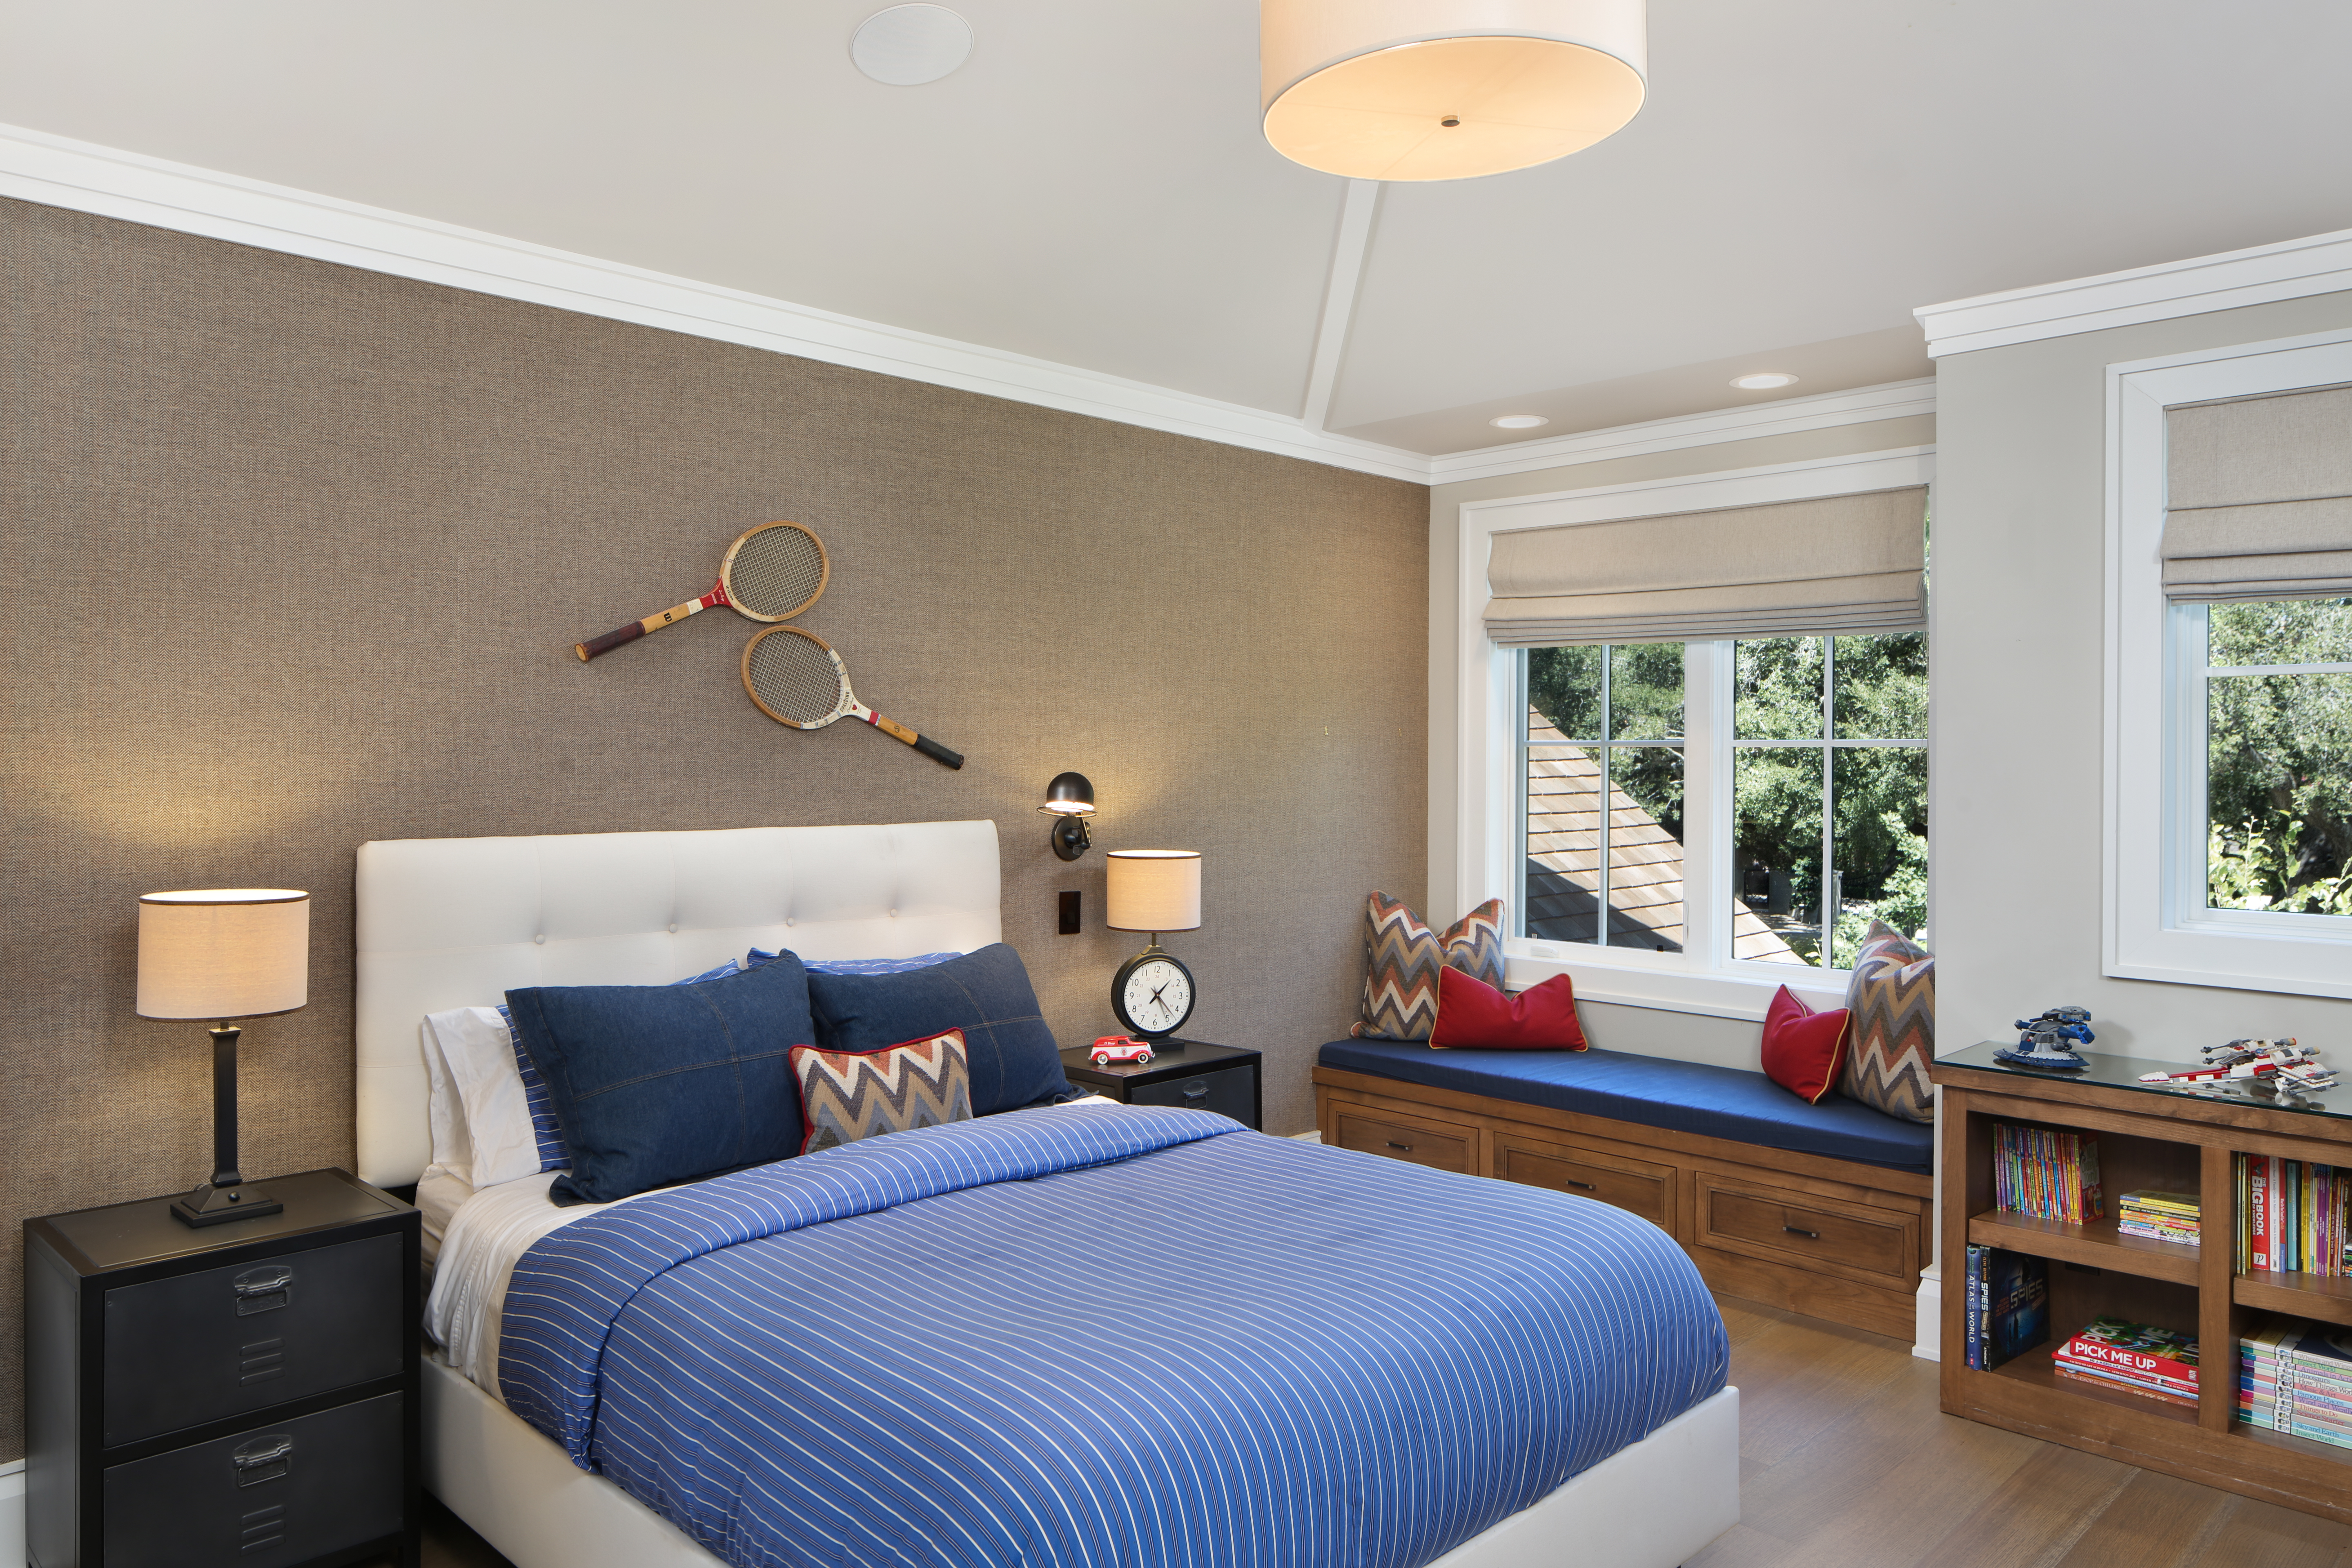 The boy's bedroom blends a youthful feel with sophisticated design. Serving as an accent wall, a chic mosaic is made up of pebbles from Island Stone. Tennis racks are used as decor above the bed, adding a playful touch to the space. Toys are displayed around the room, from the nightstand to the bookcase. To contrast the playful tones of blue and red, the team at Sullivan Design Studio uses wood-like tiles from Ann Sacks and two dark wood nightstands.